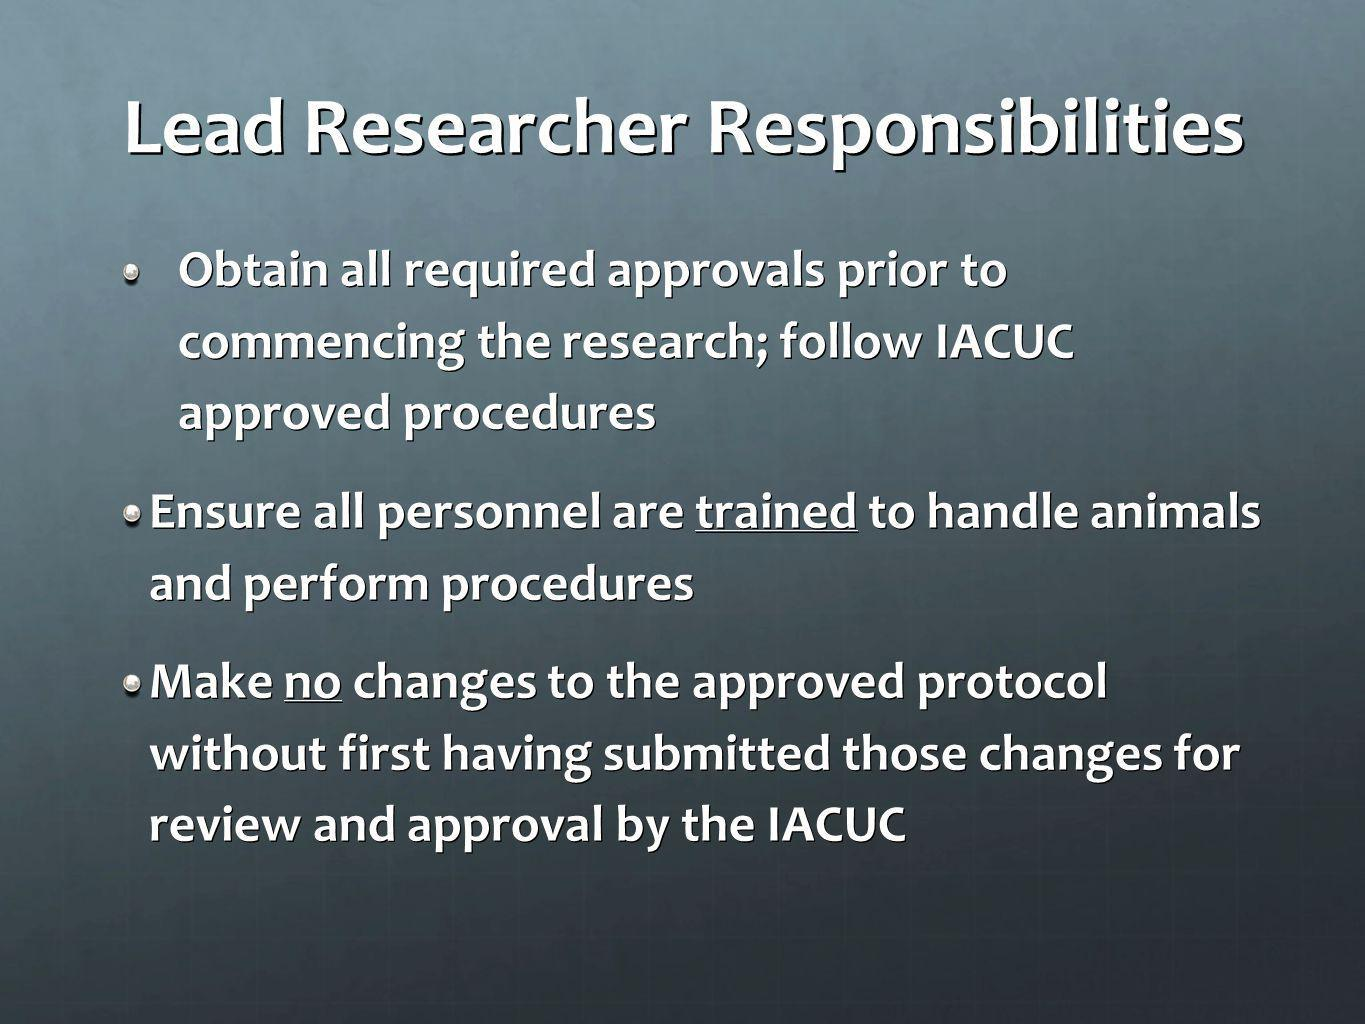 Lead Researcher Responsibilities